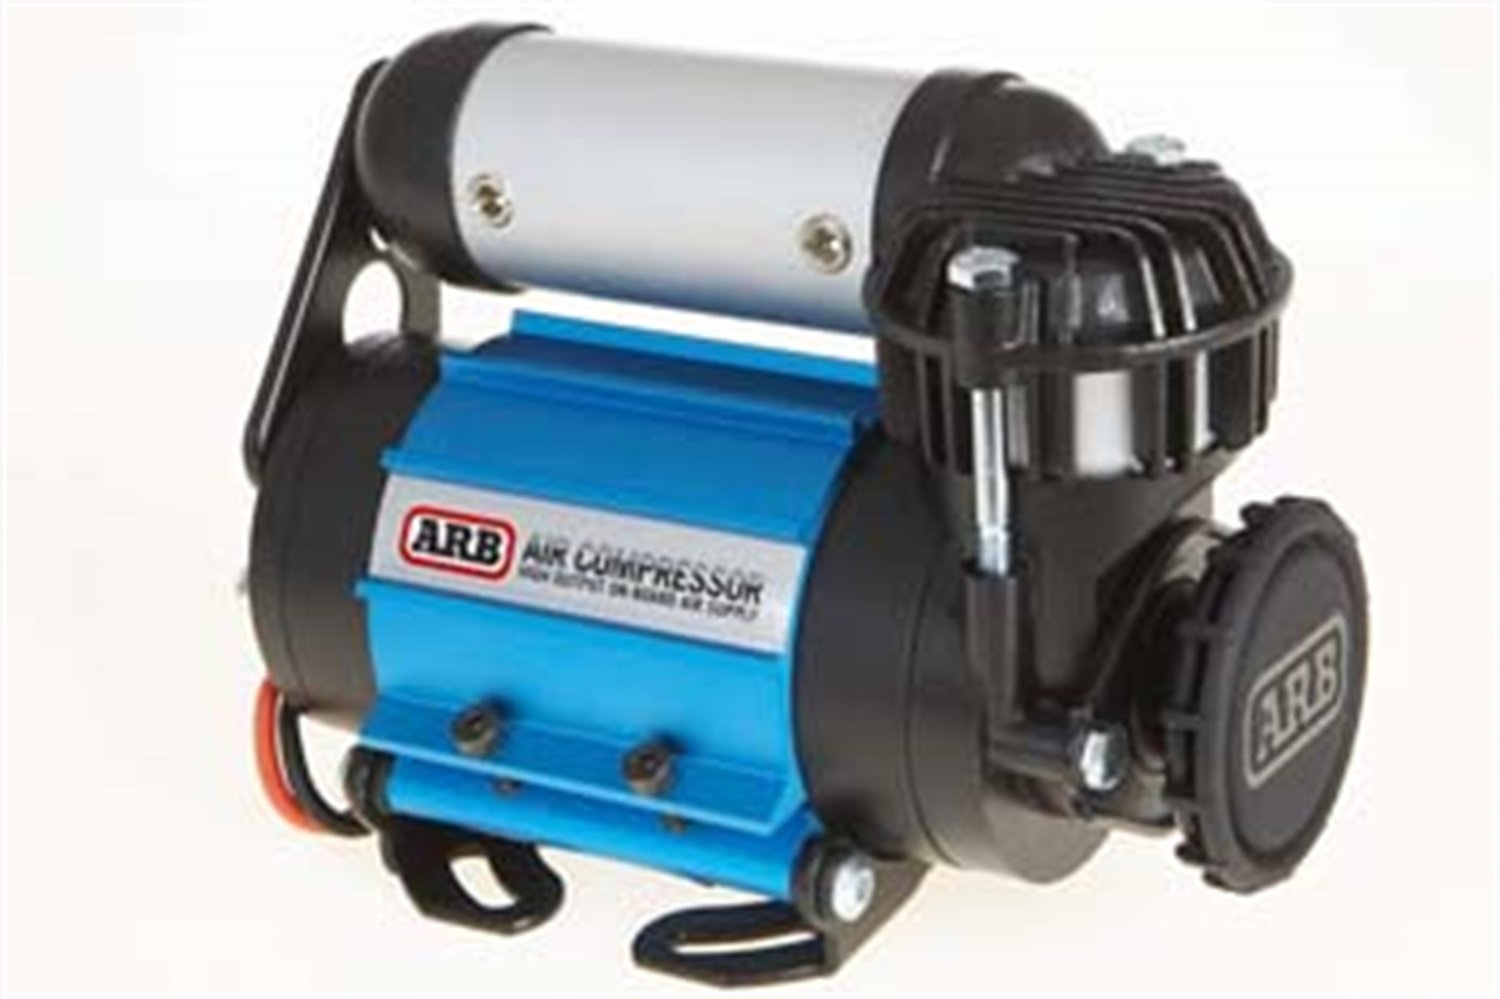 on board air compressor. on board air compressor .